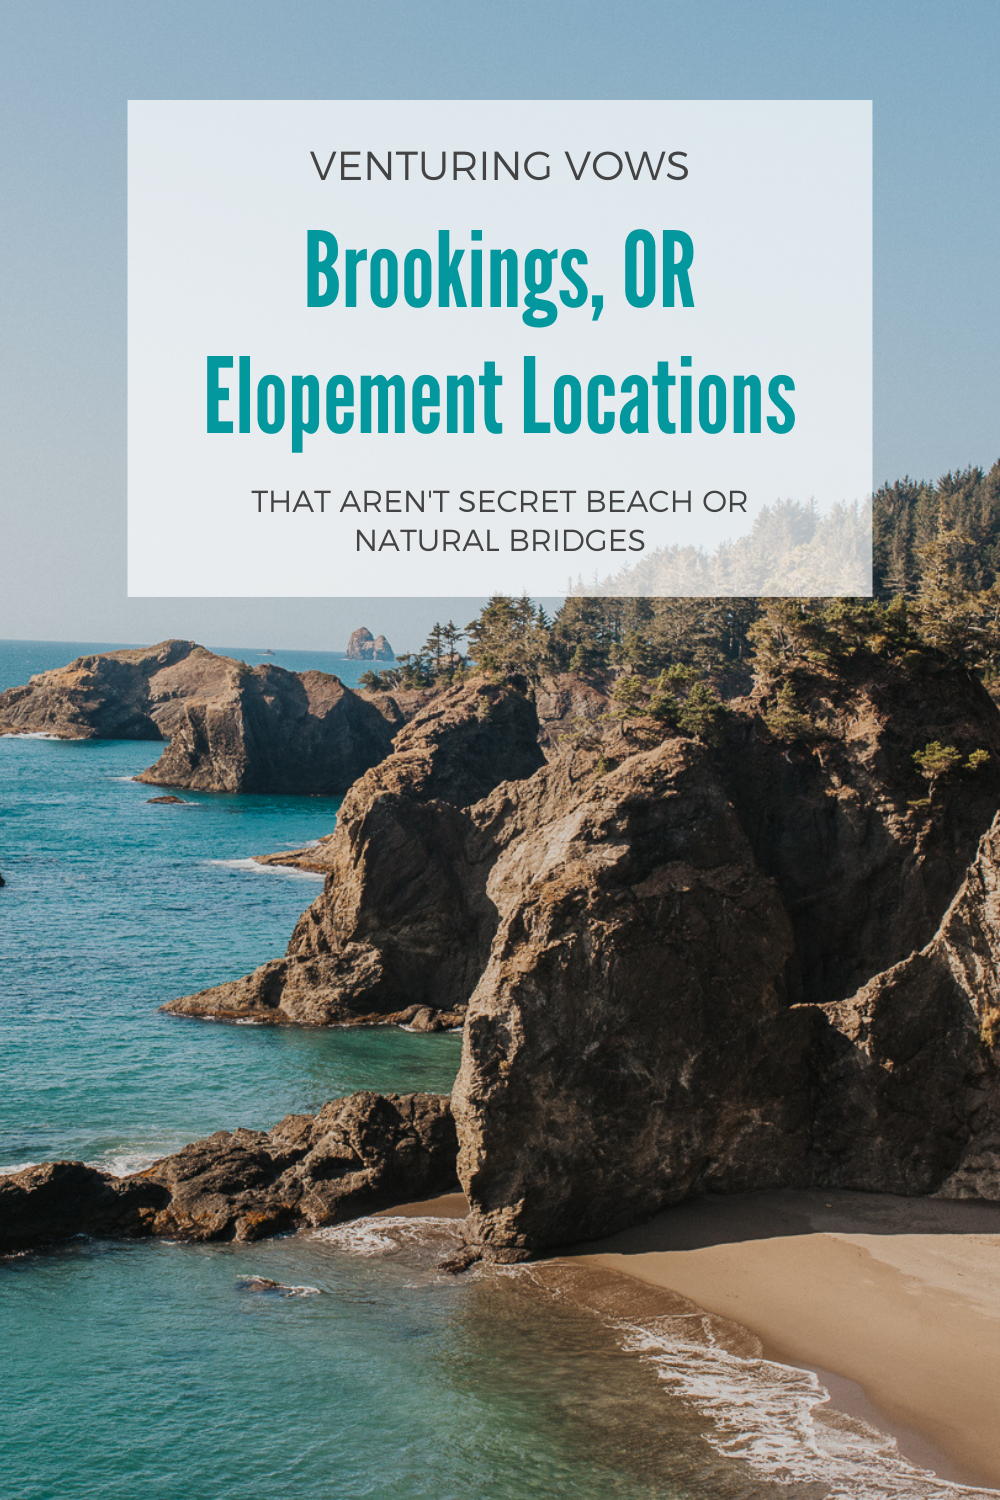 Brookings, OR Elopement Locations